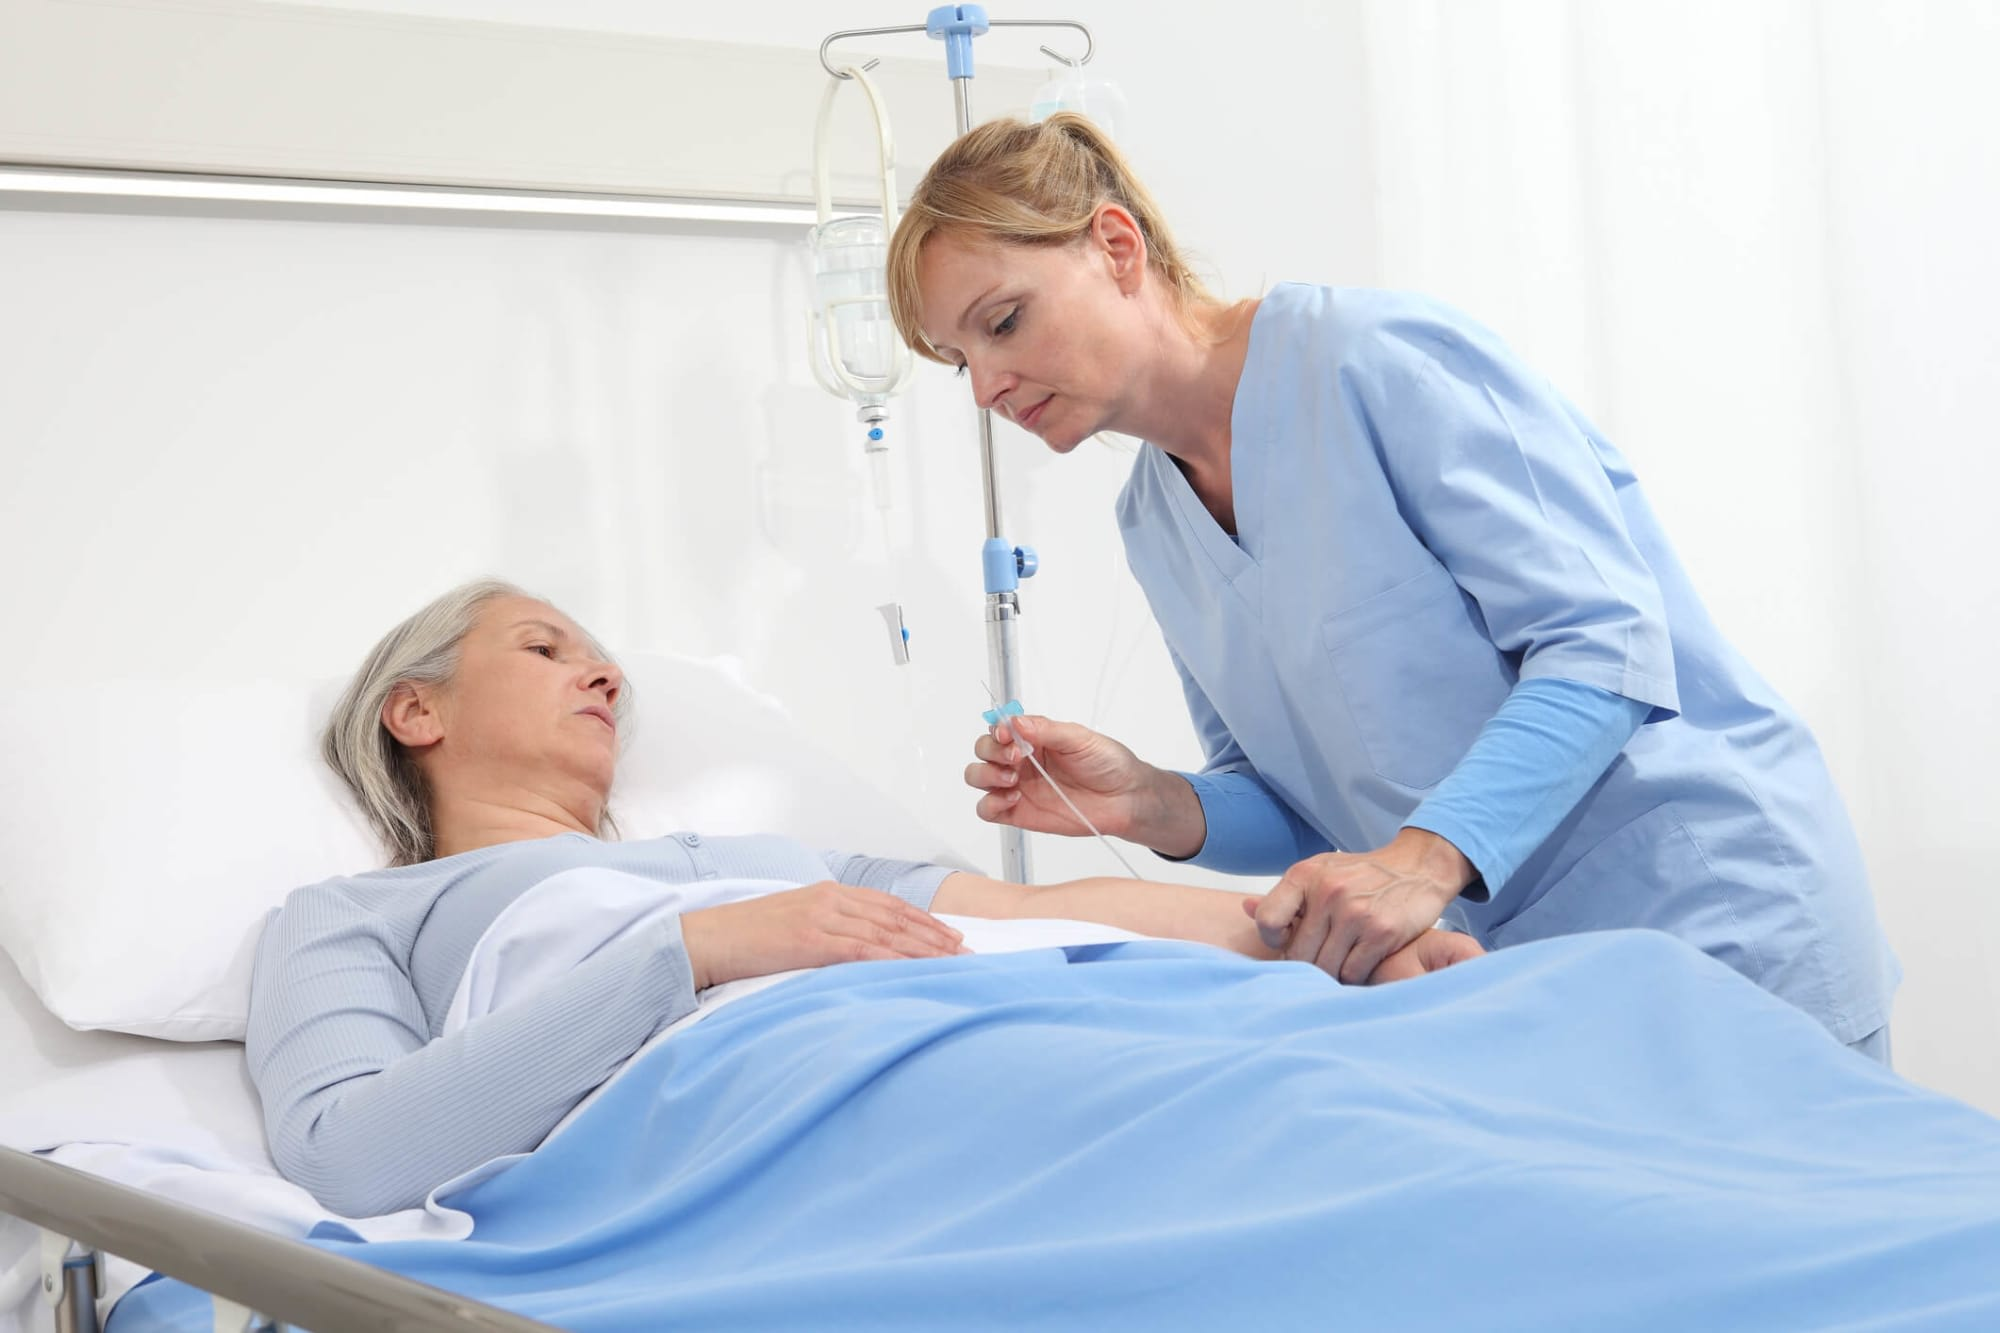 How to Become an IV Infusion Nurse